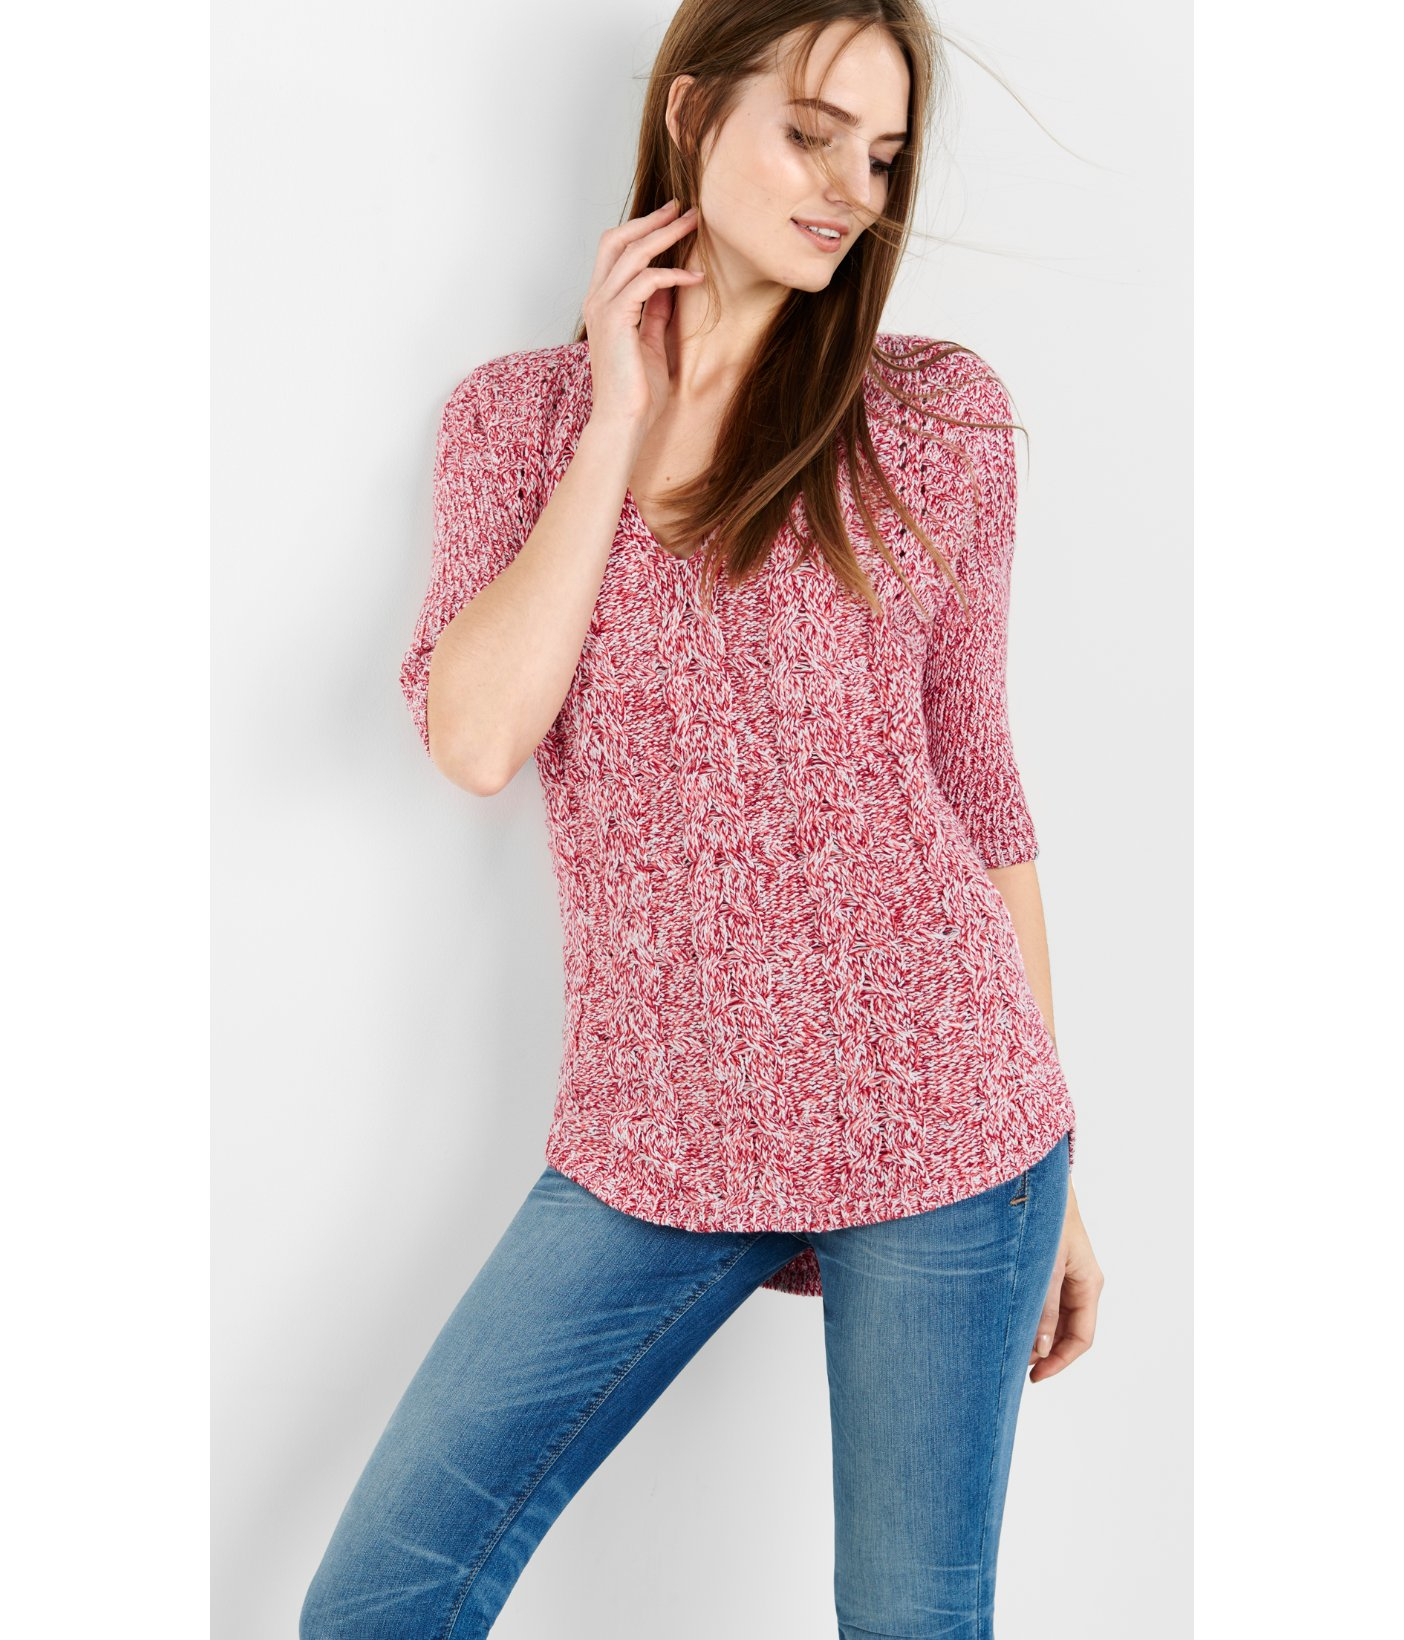 Express Marl Cable London Tunic Sweater in Pink | Lyst